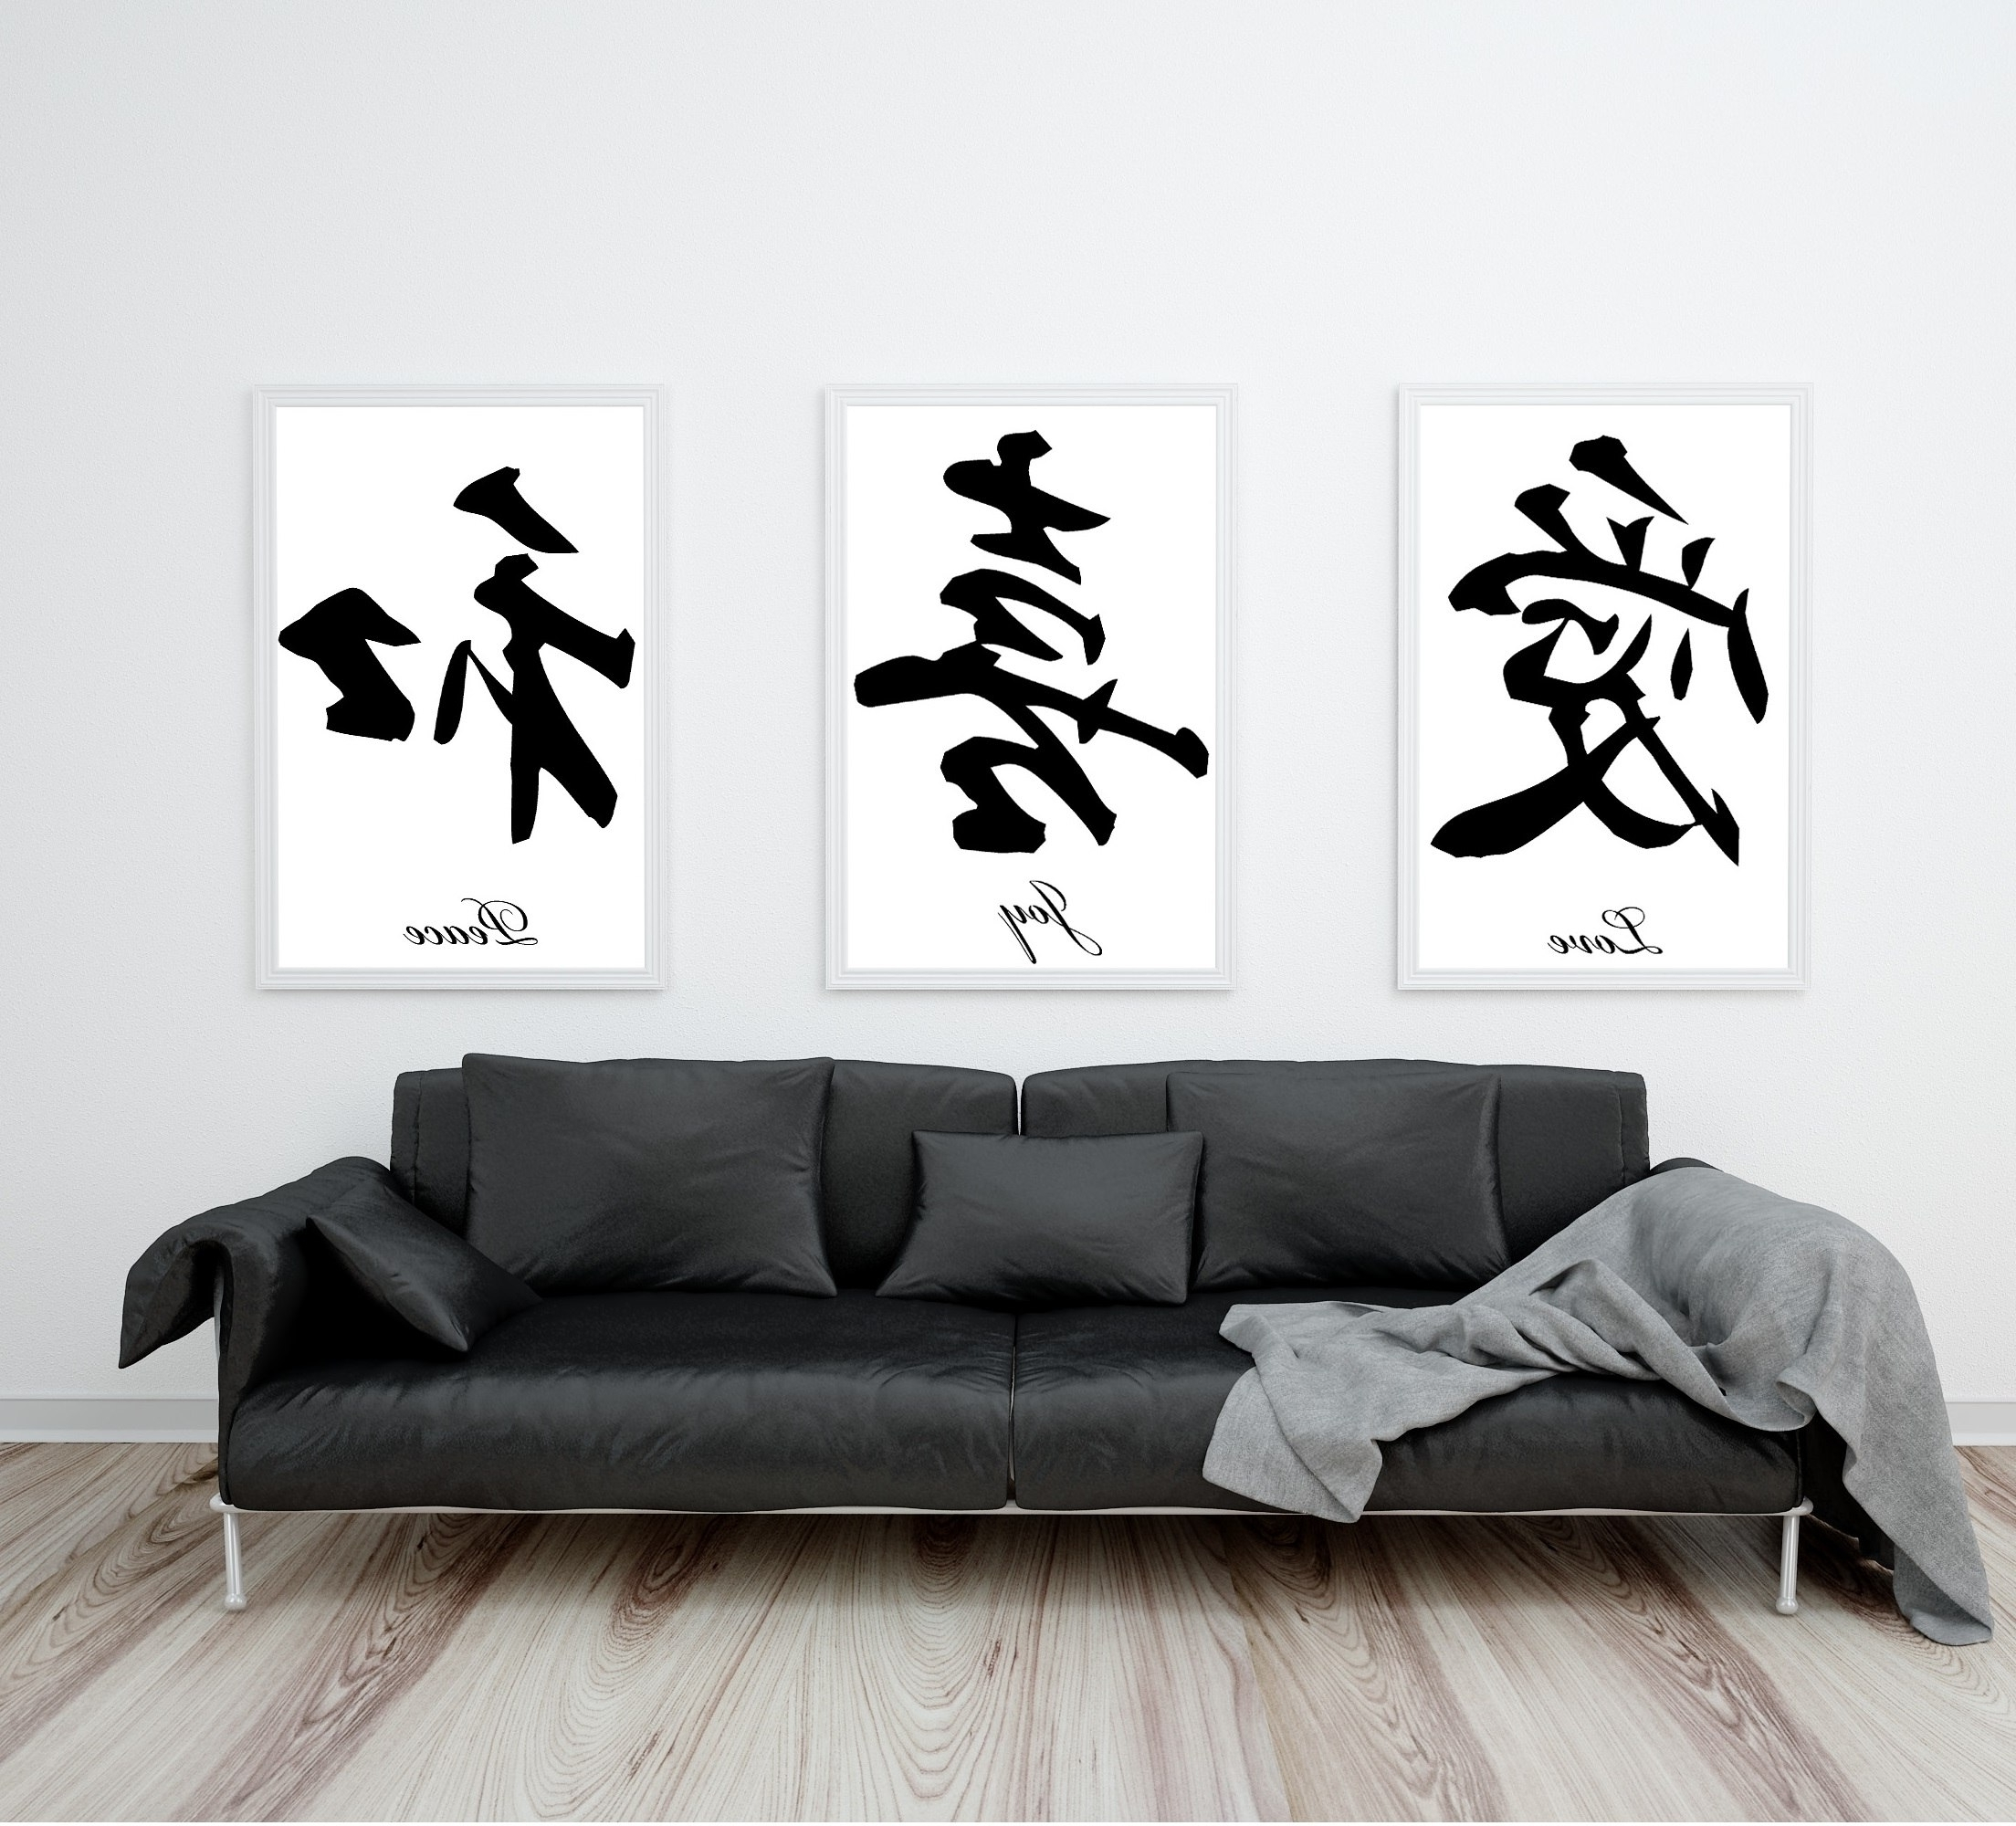 Japanese Wall Art Intended For Popular Japanese Wall Decor (Gallery 7 of 15)